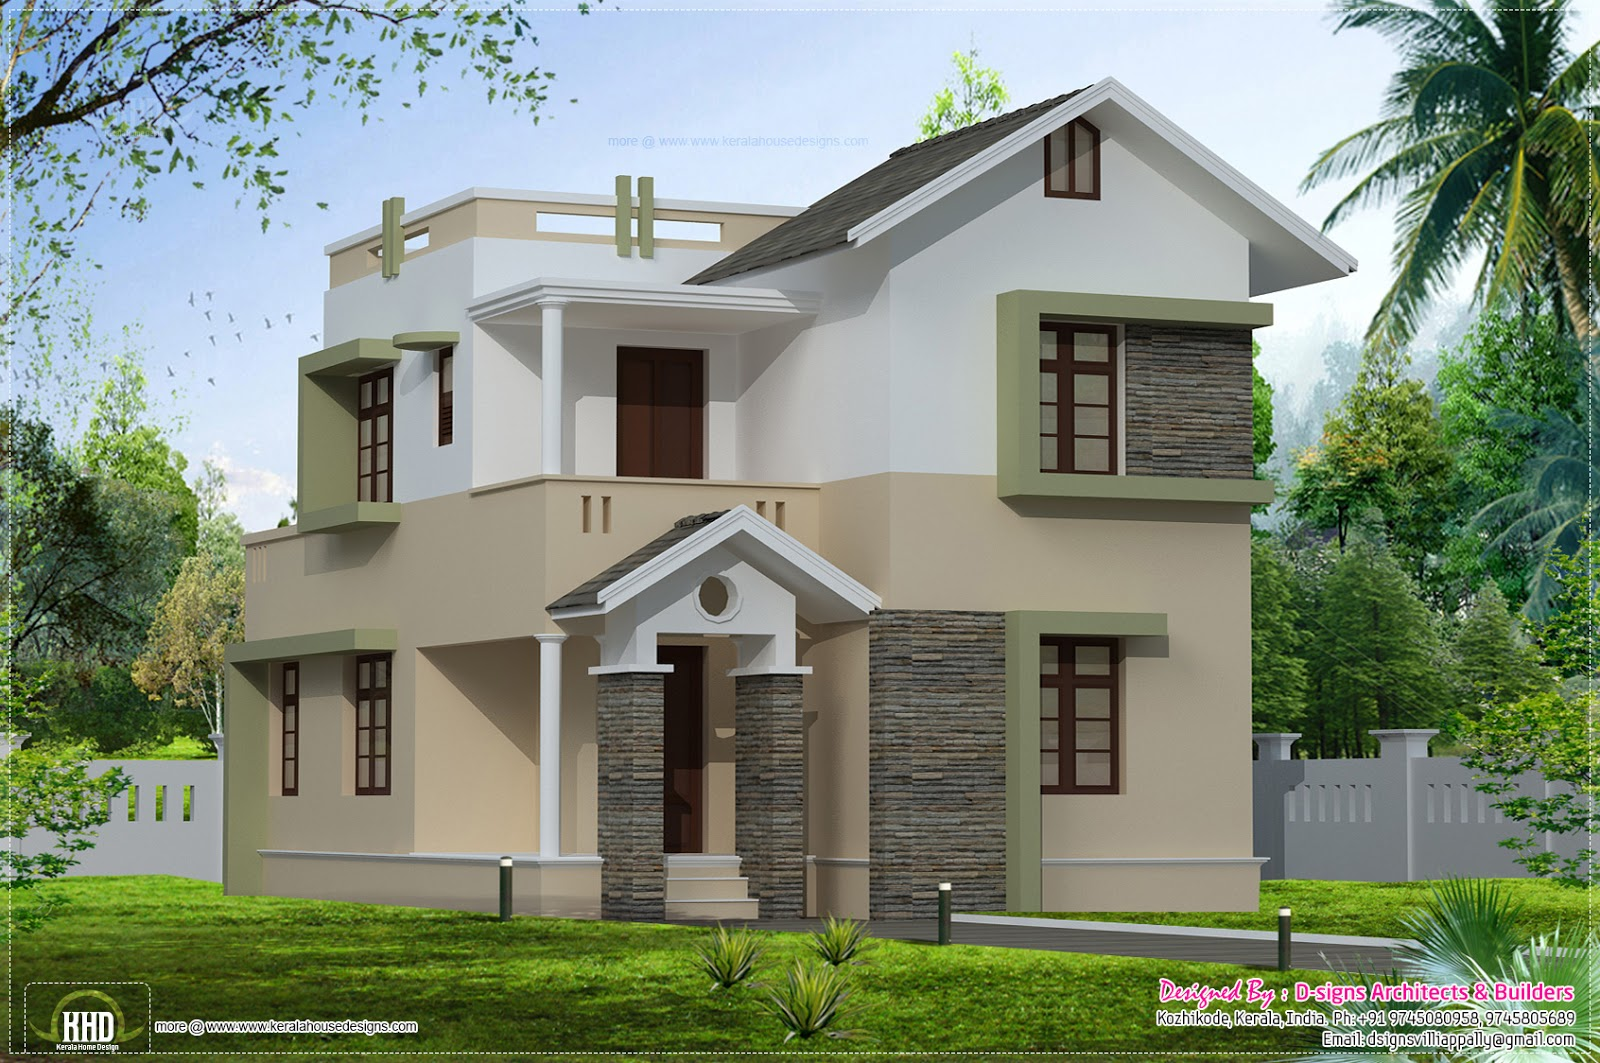 Front elevation of small houses home design and decor for Pretty small houses